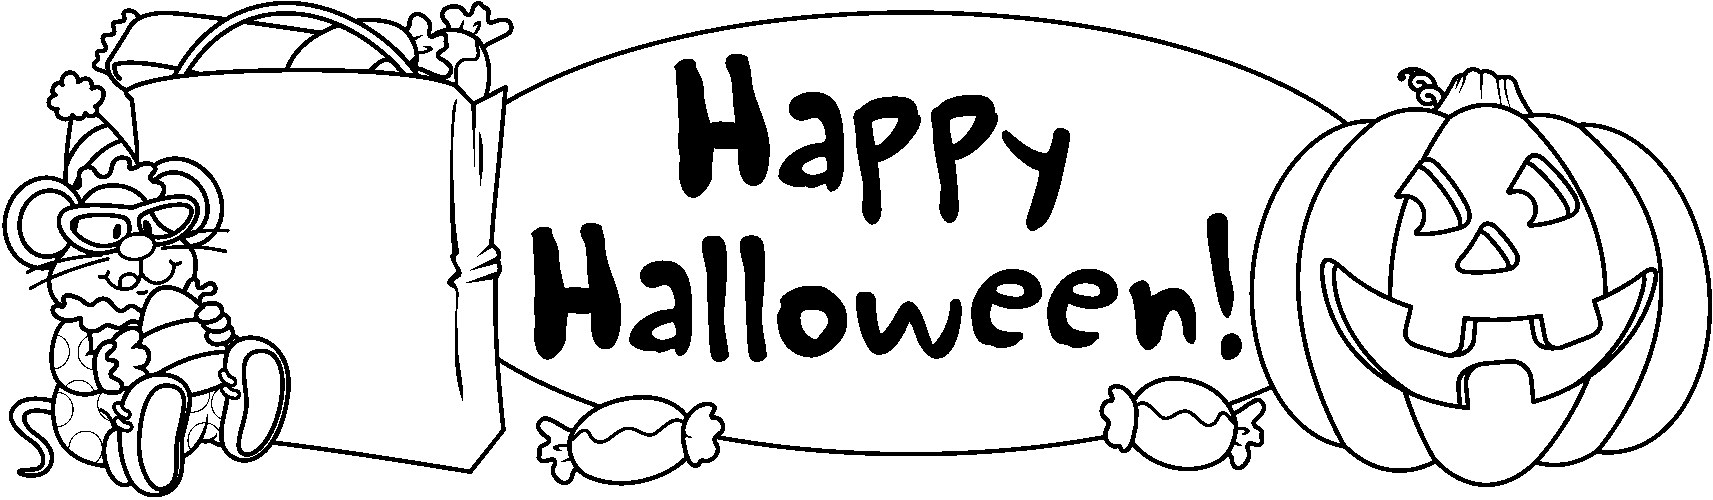 hight resolution of black and white halloween clipart